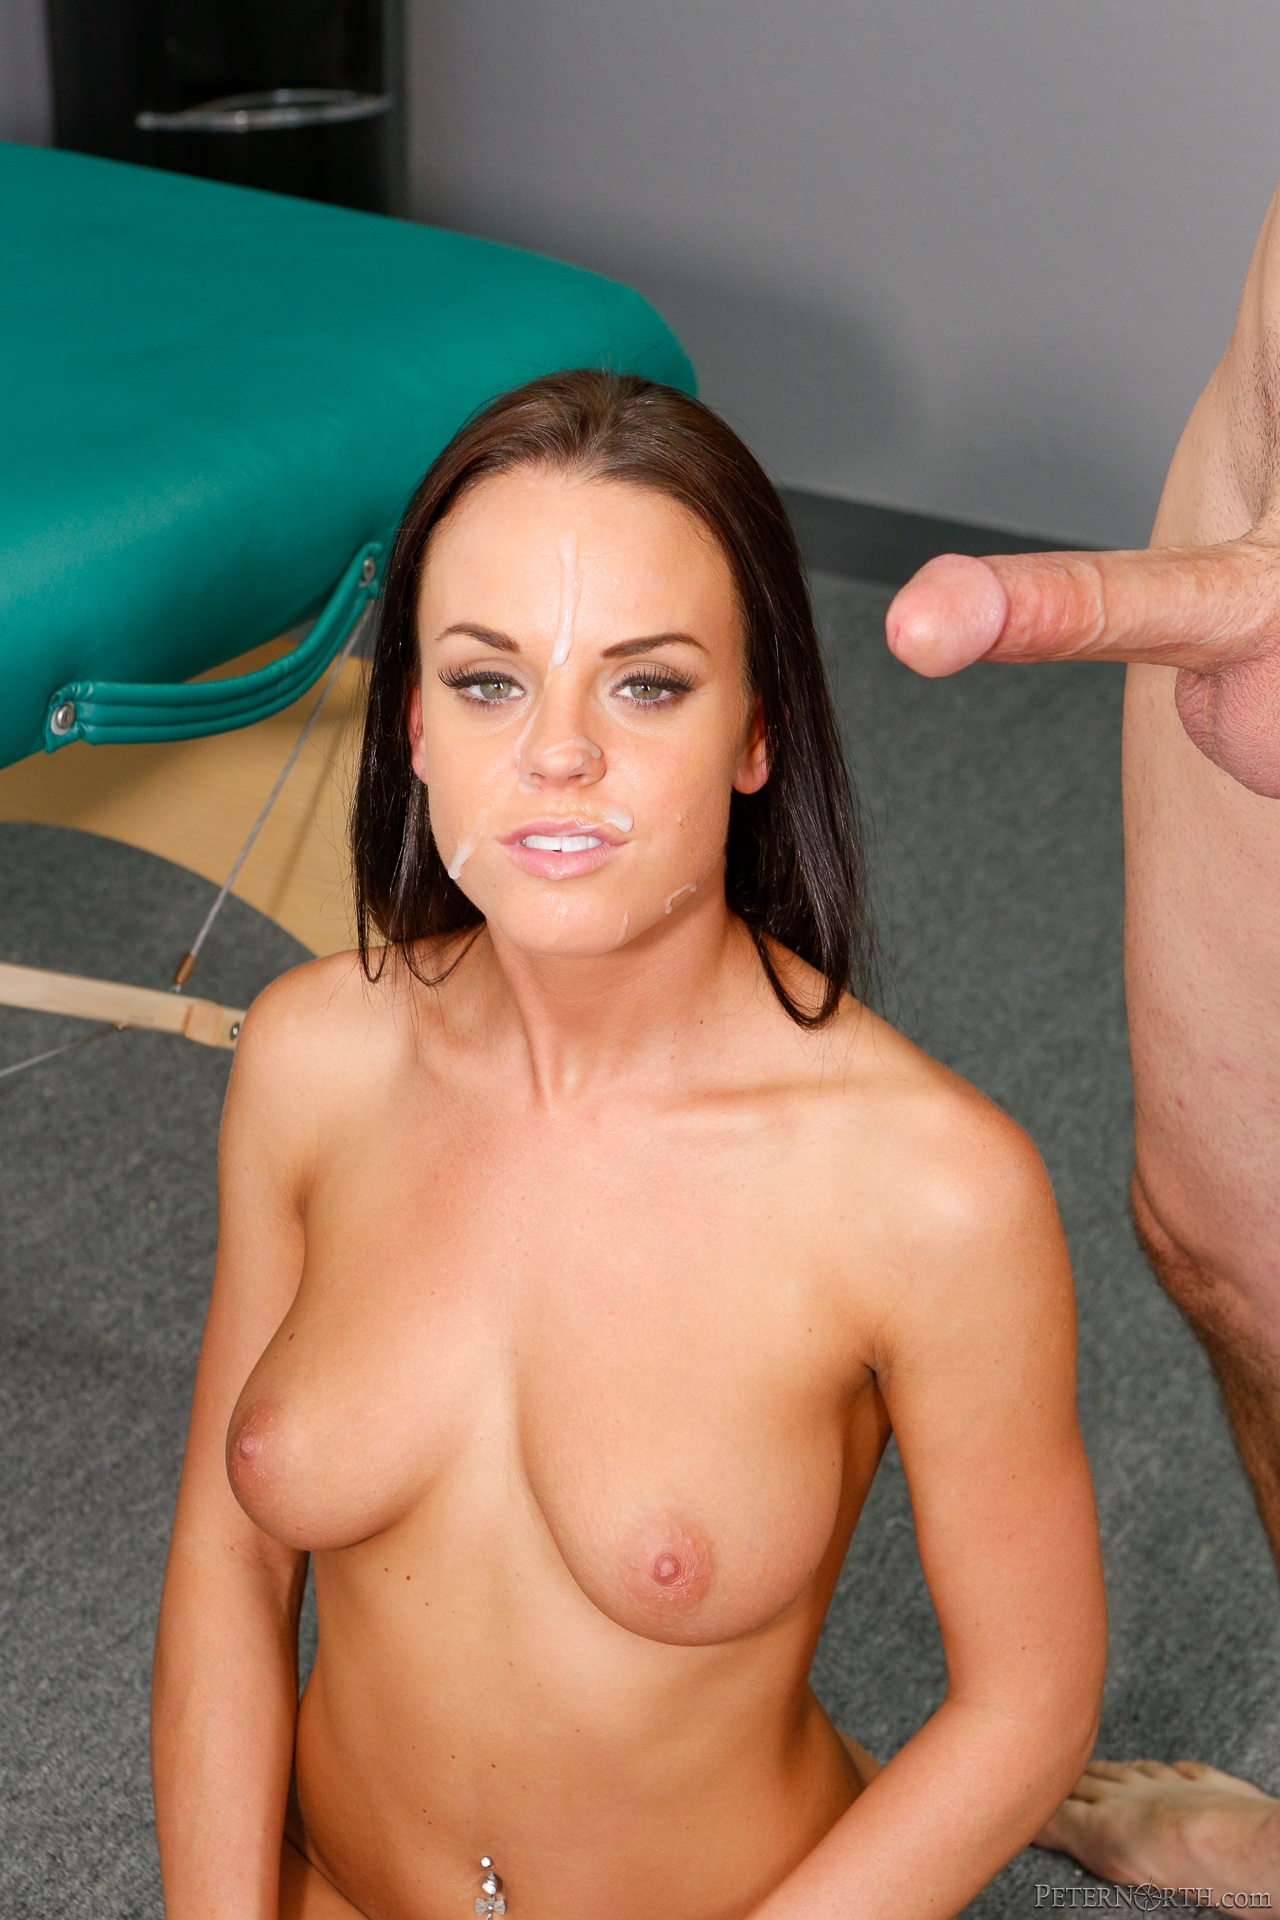 Angel del rey gets her pussy fingered fucked and stuffed - 3 9